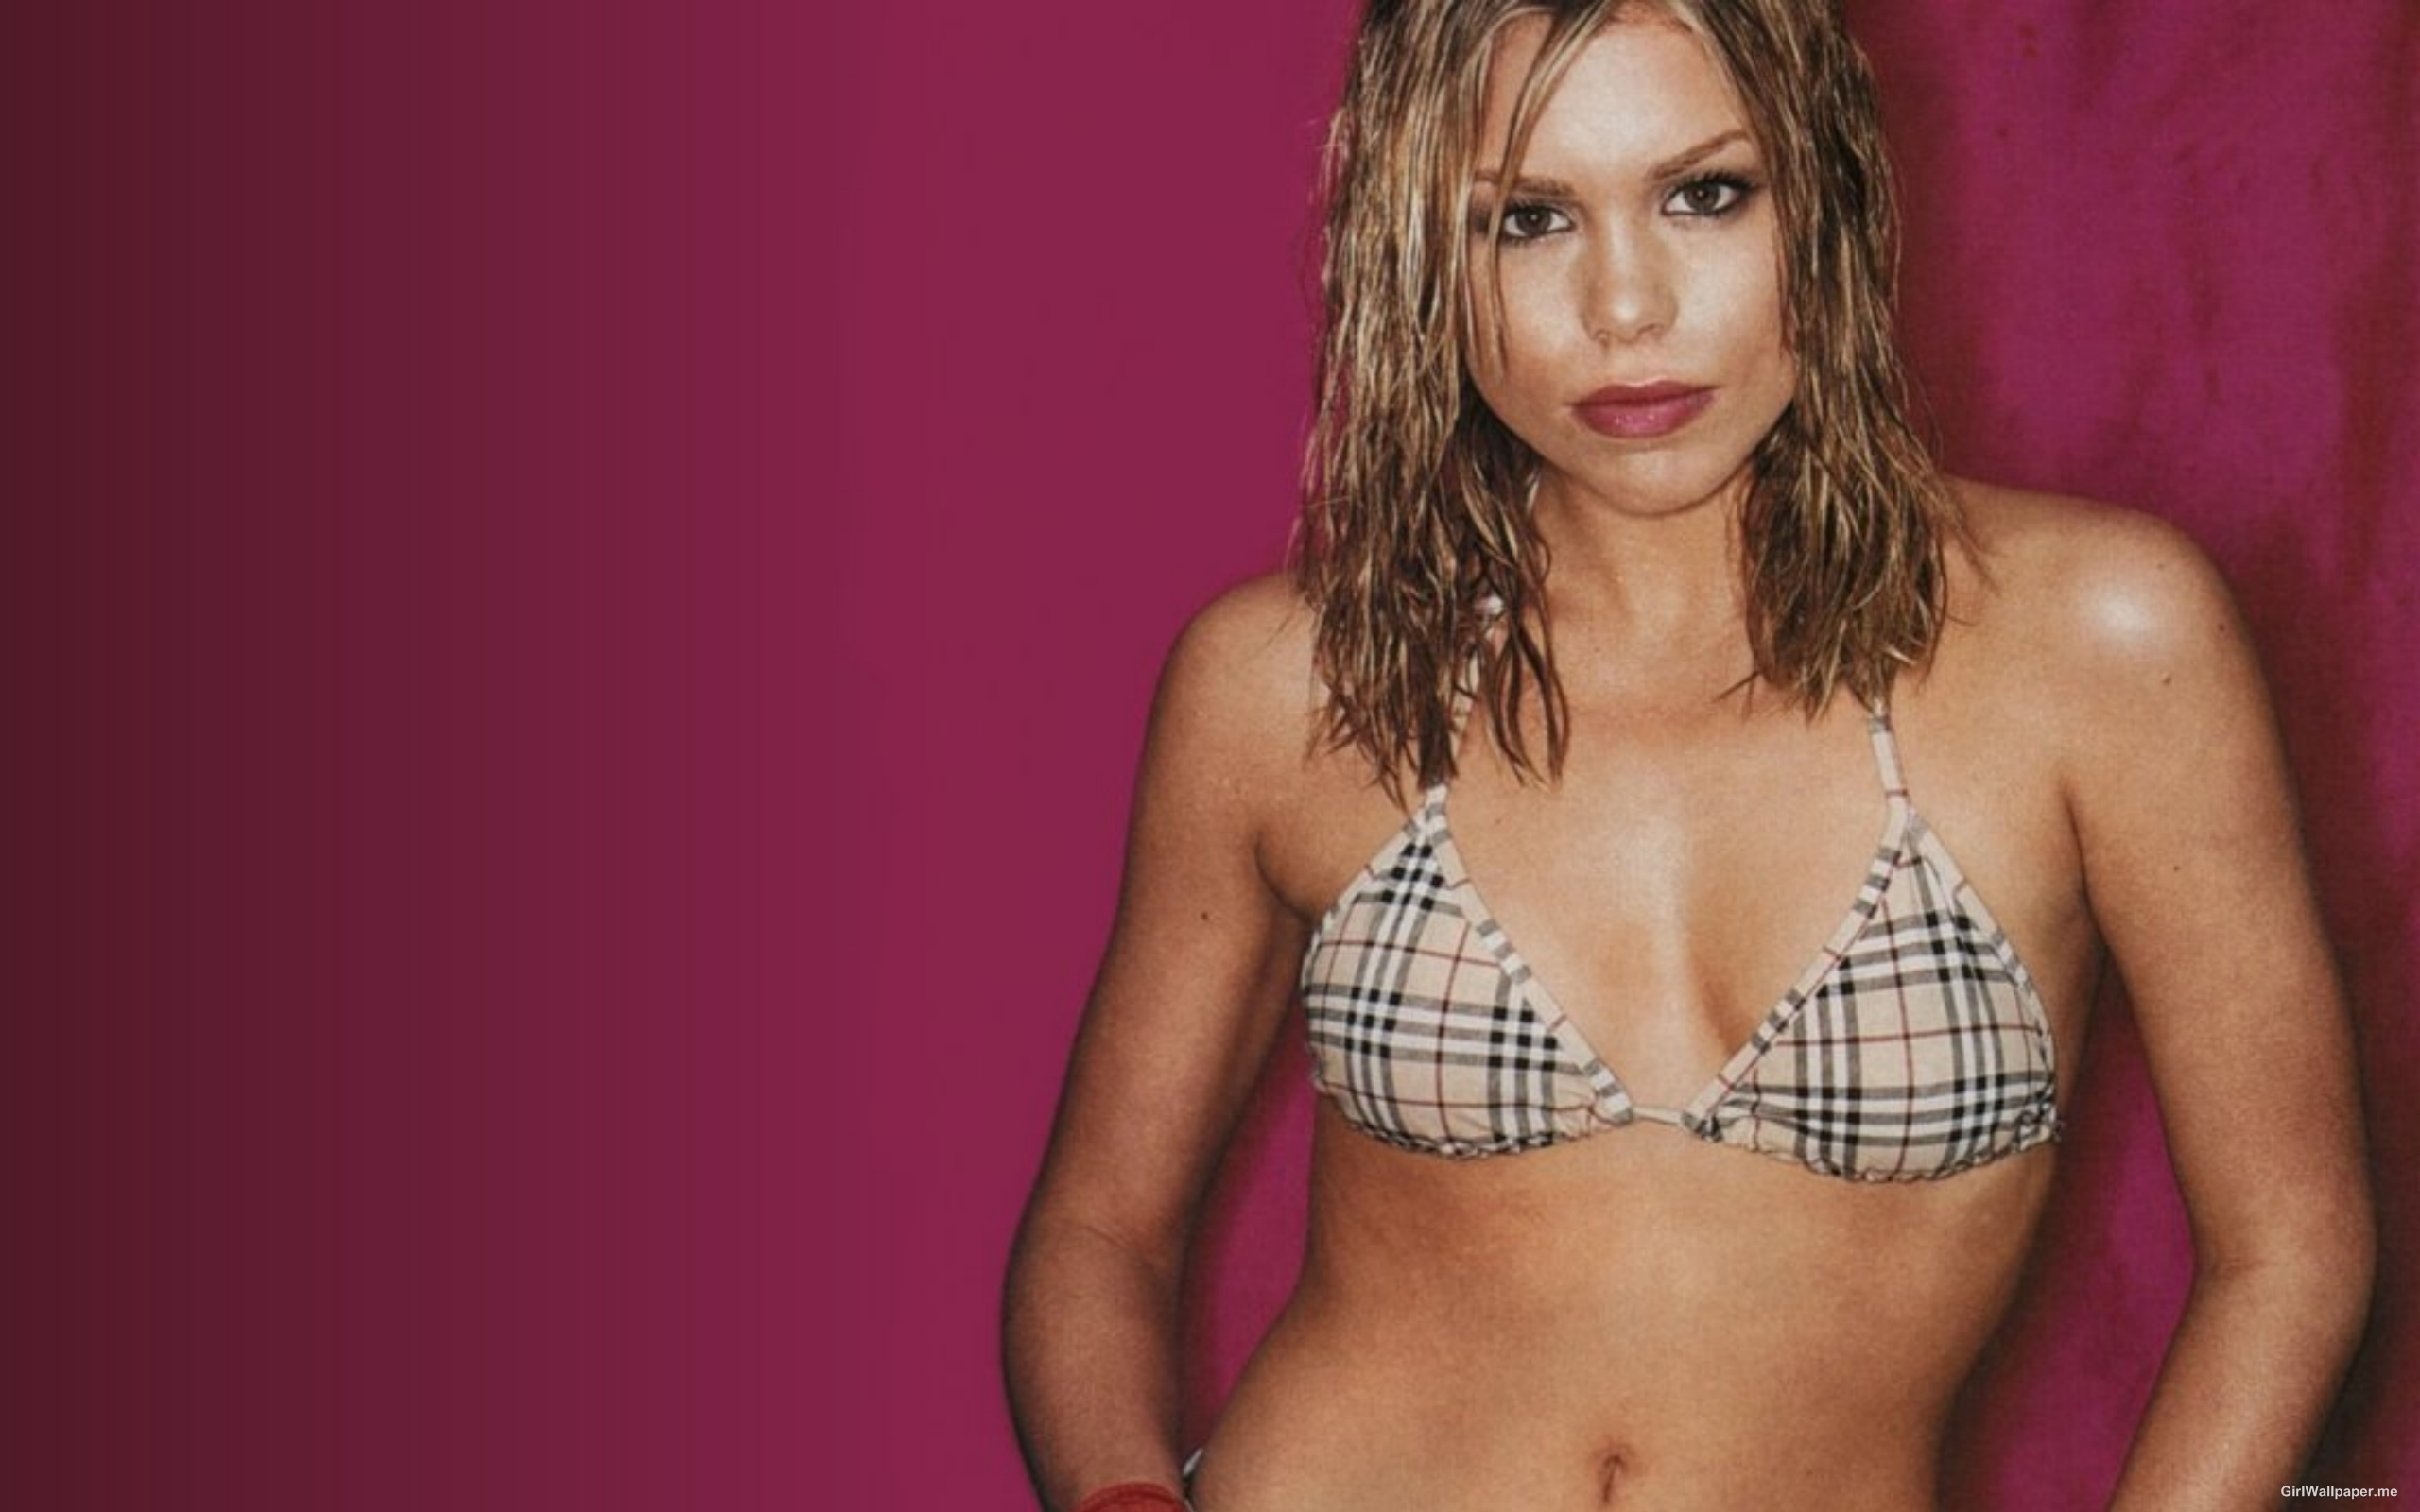 Image billie piper 2560x1600 5184 jpg fan fiction wiki you can